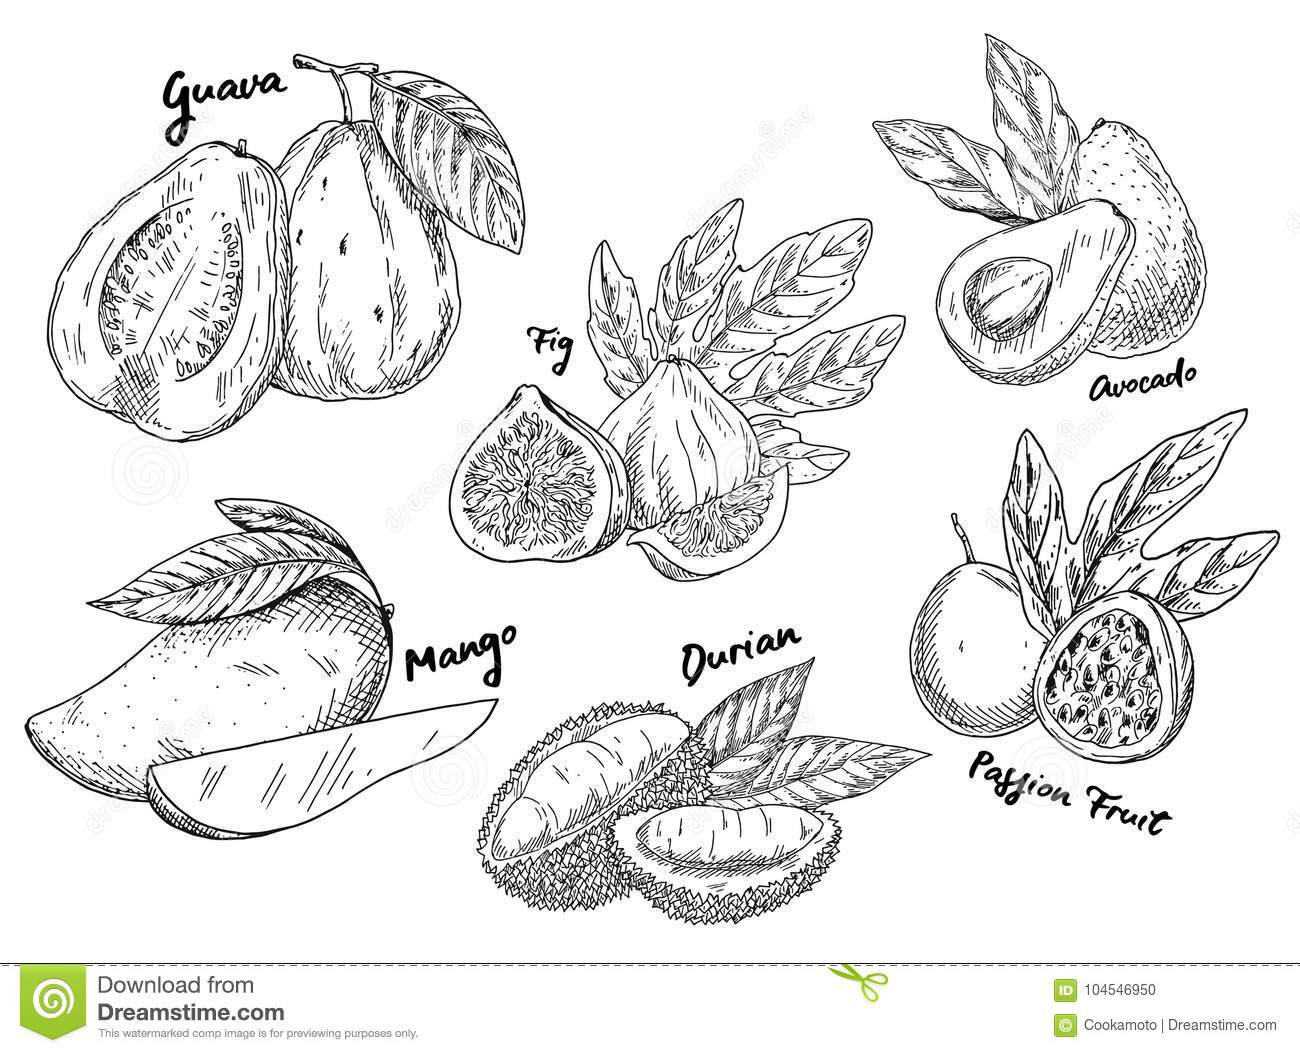 Sketch Of Guava And Avocado, Fig And Mango, Durian Stock